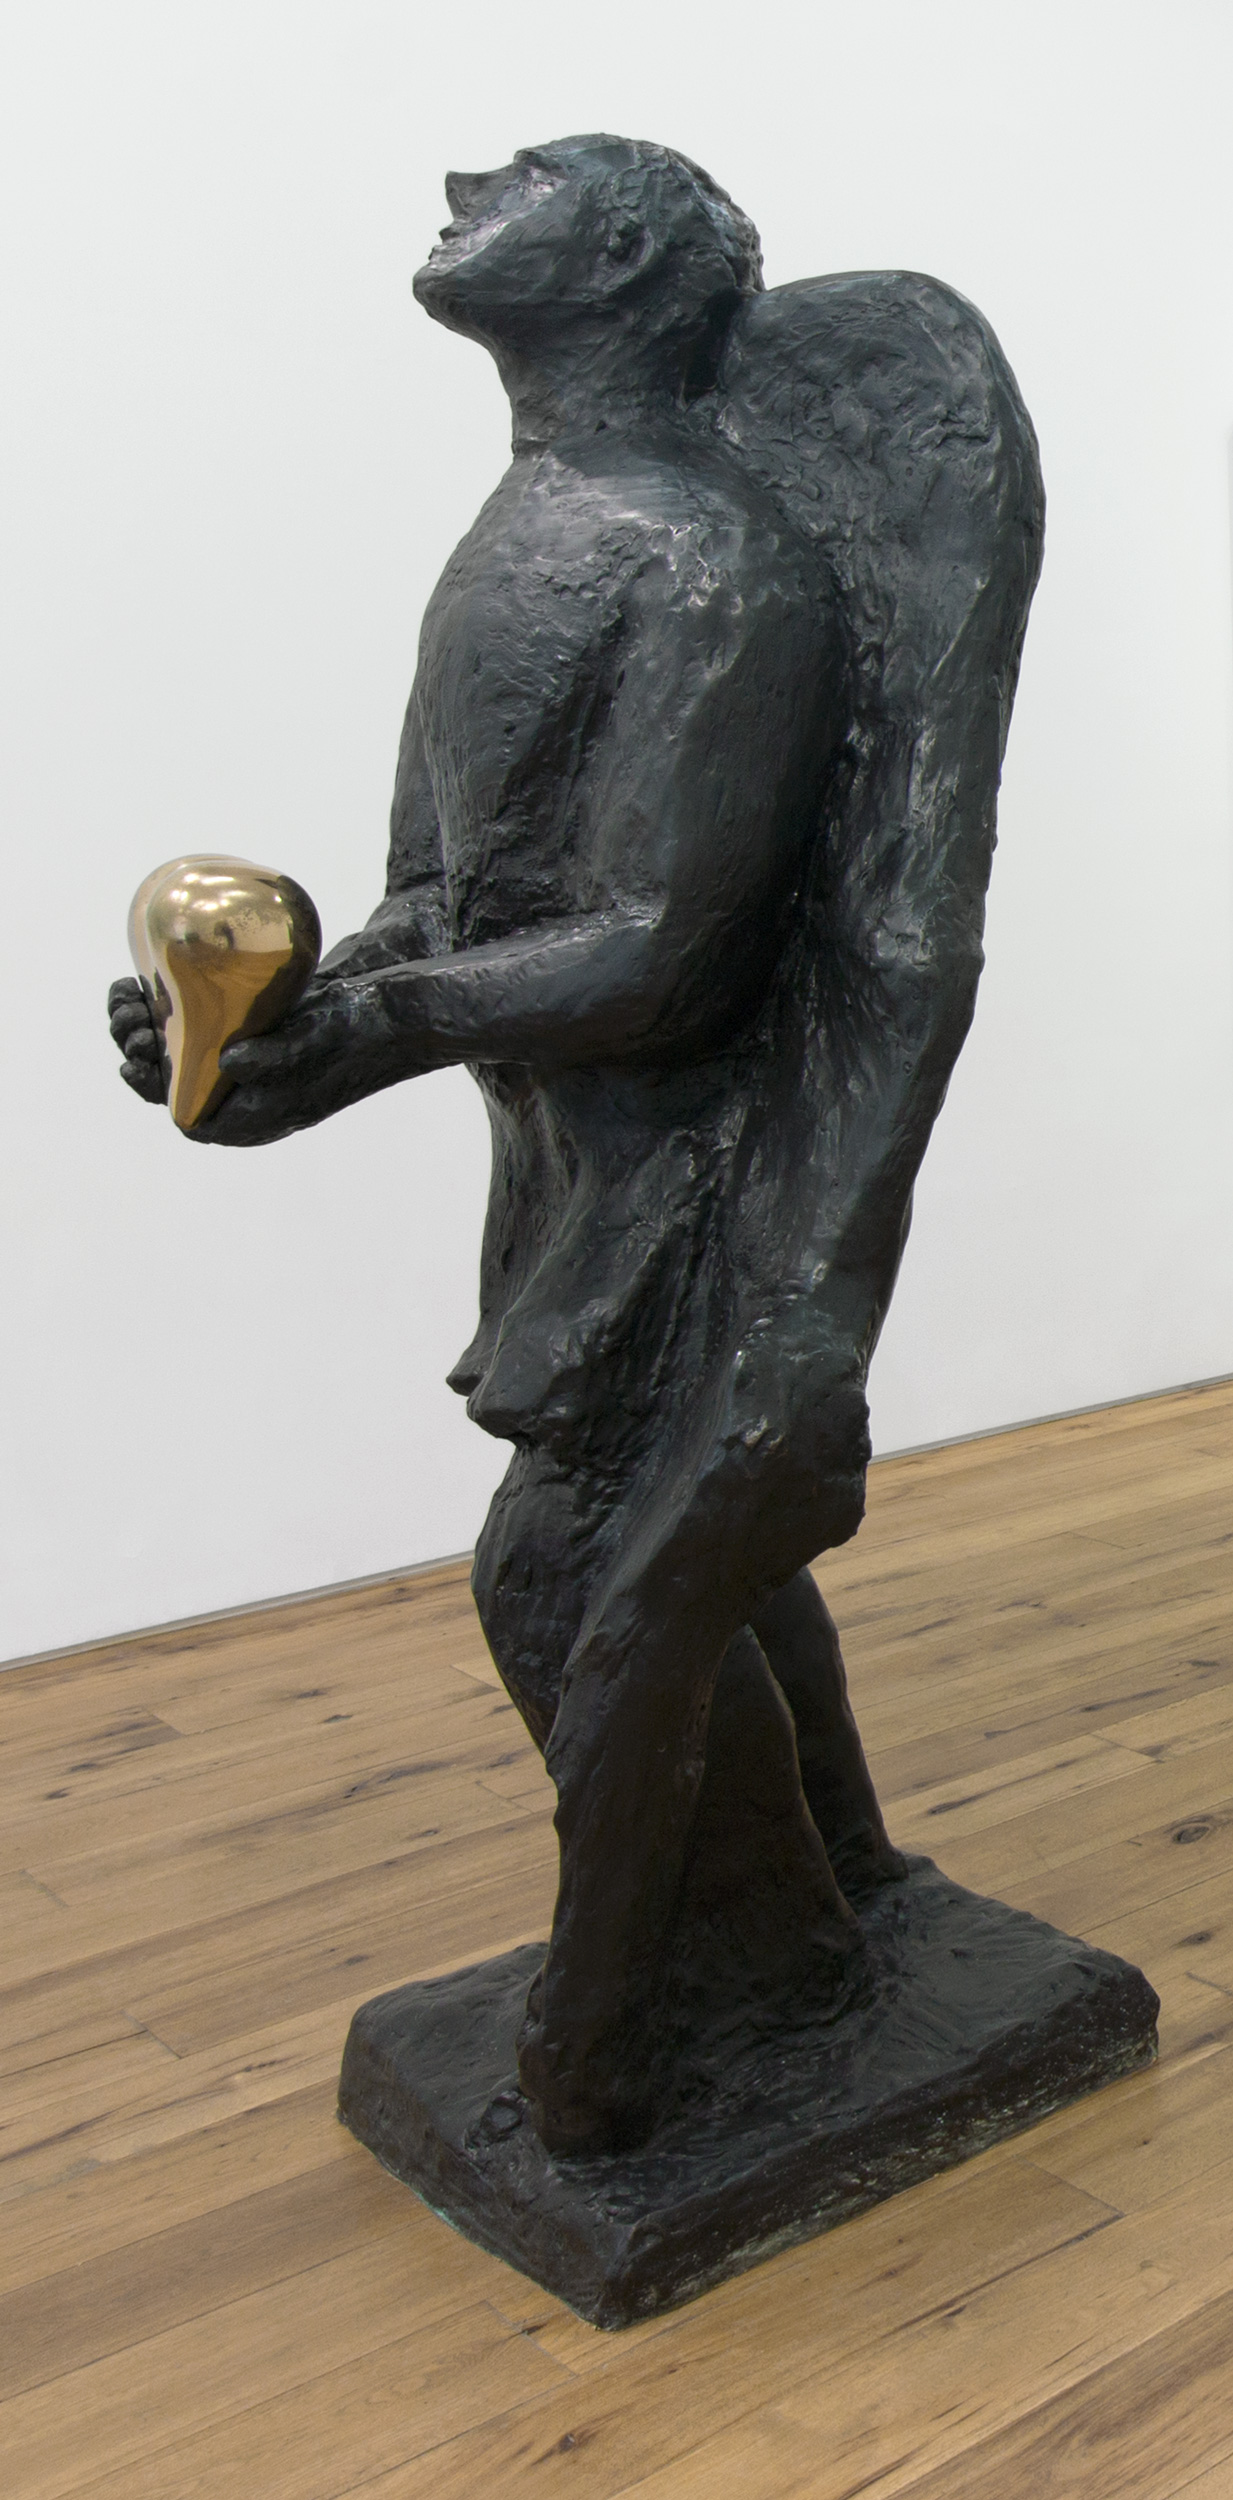 2000 Bronze 78.75 x 33 x 30 in 200 x 83.8 x 76.2 cm - Marc Straus Gallery